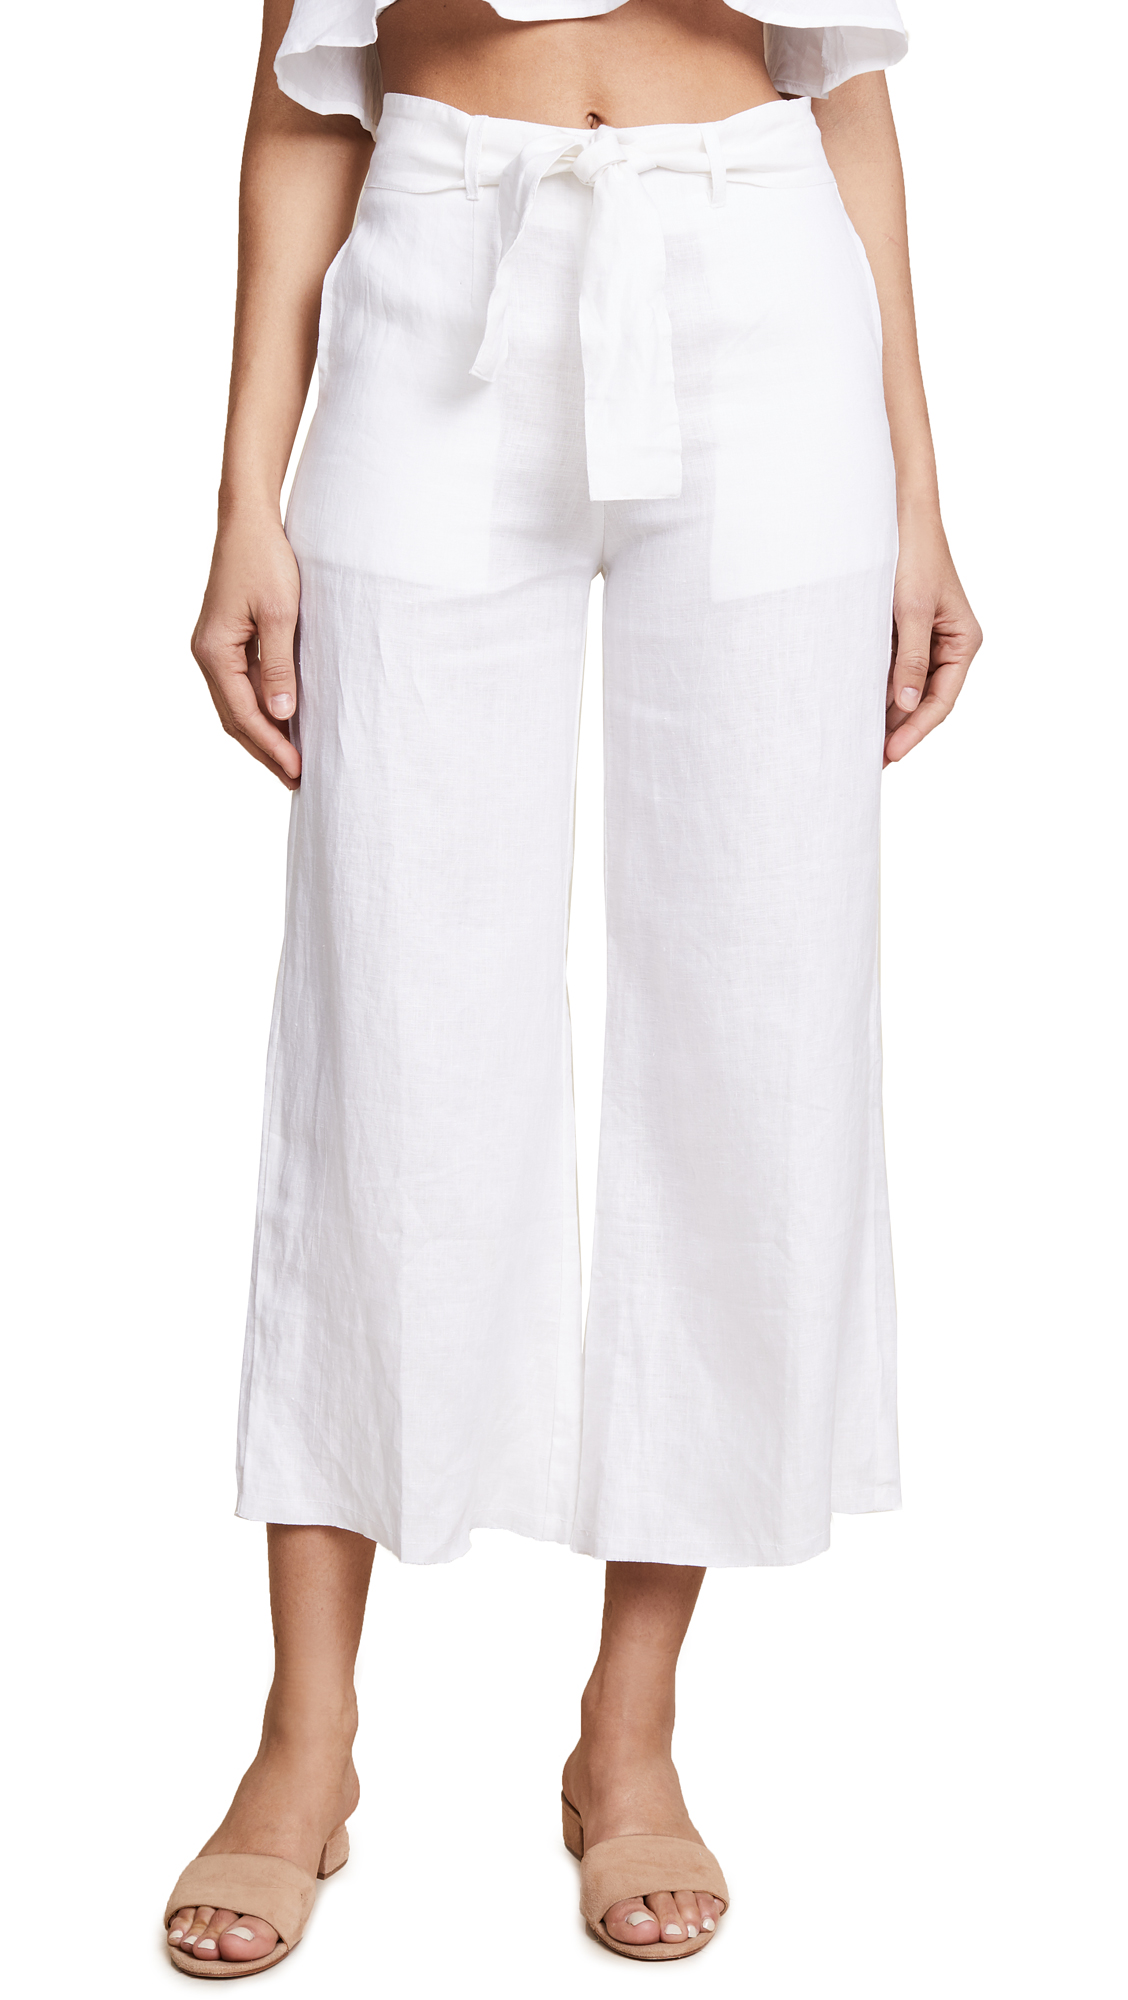 FAITHFULL THE BRAND Como Pants - White